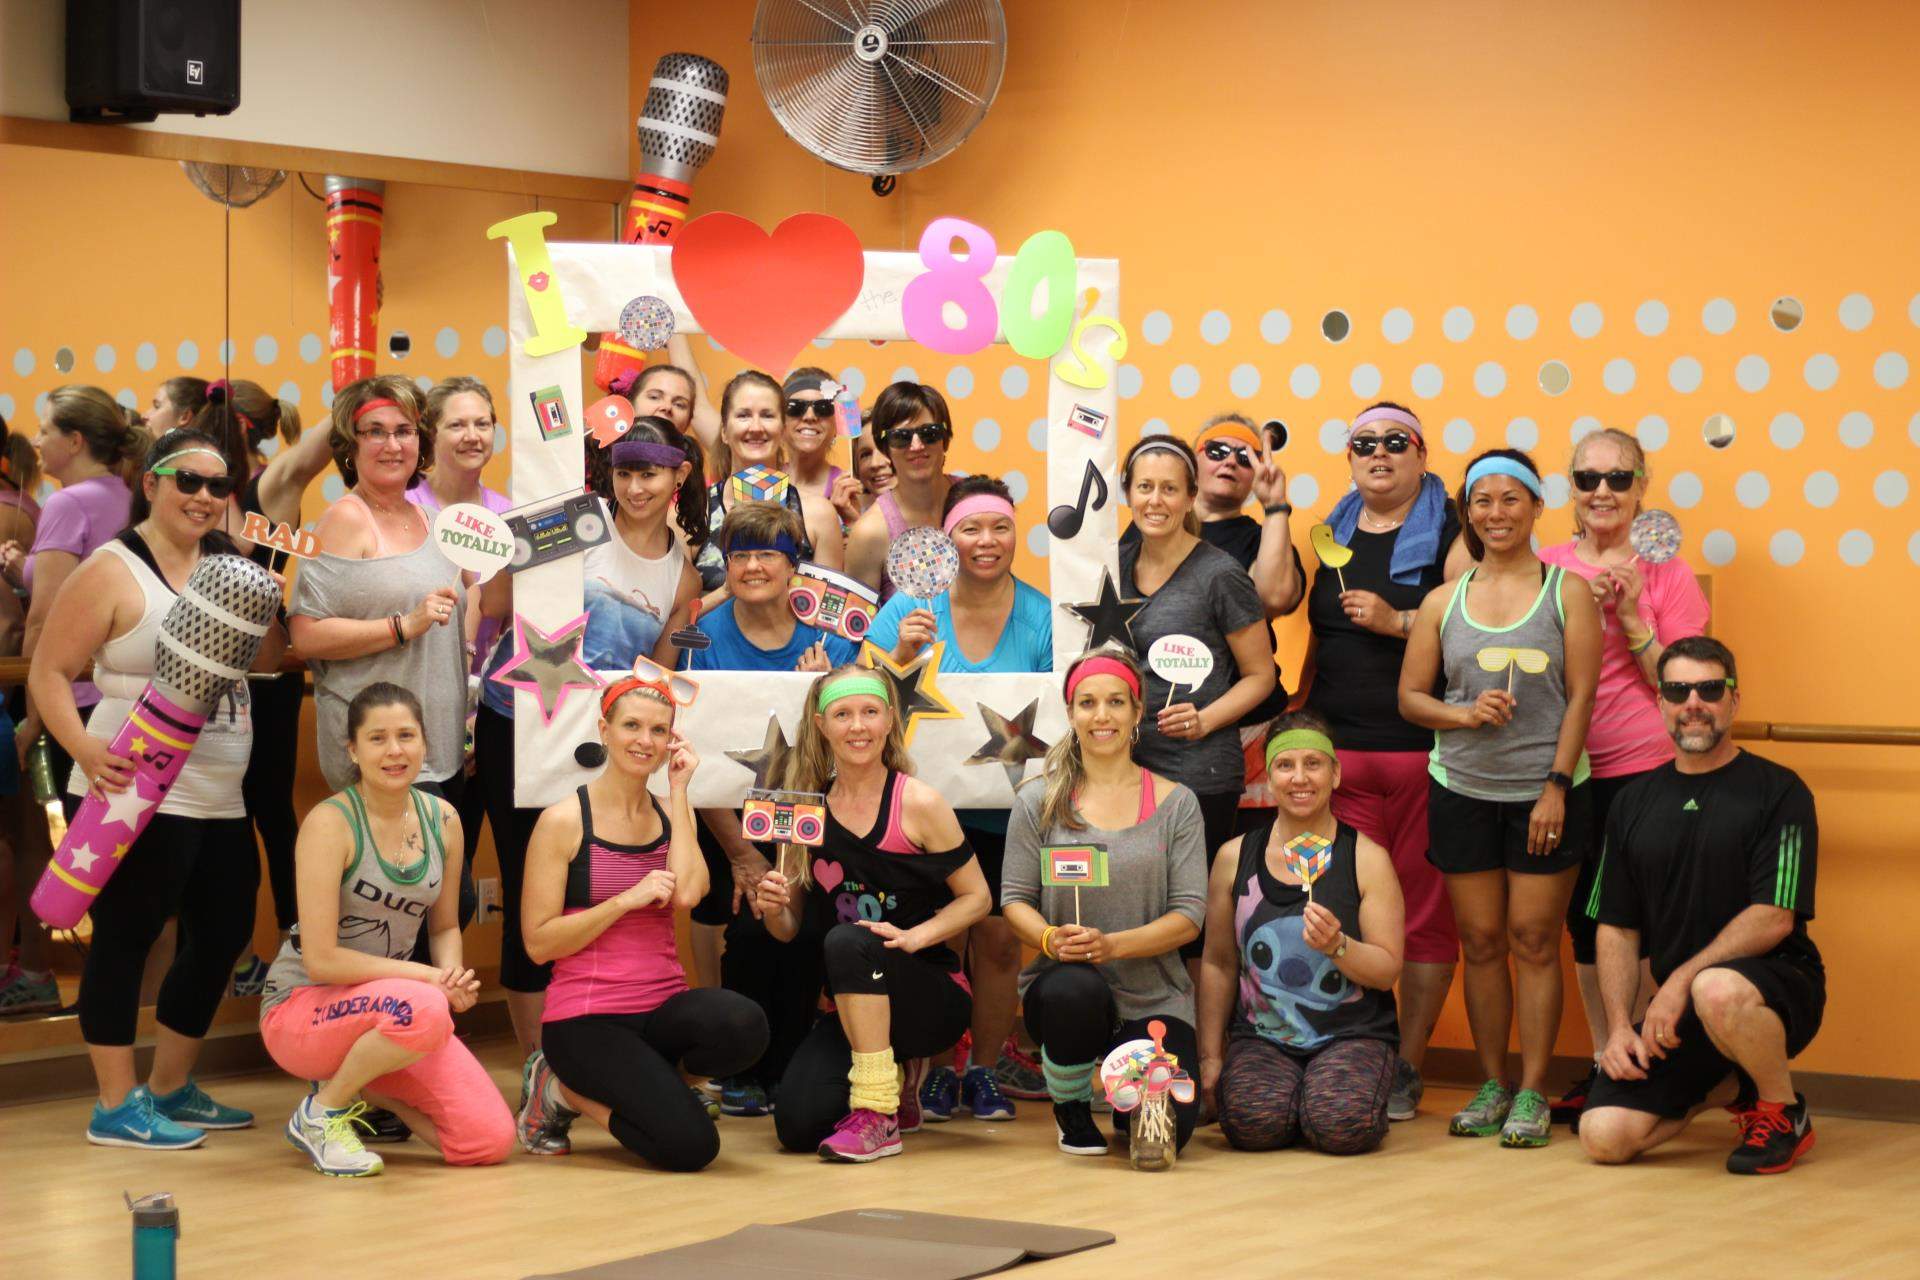 Rec Center 80s Workout Party